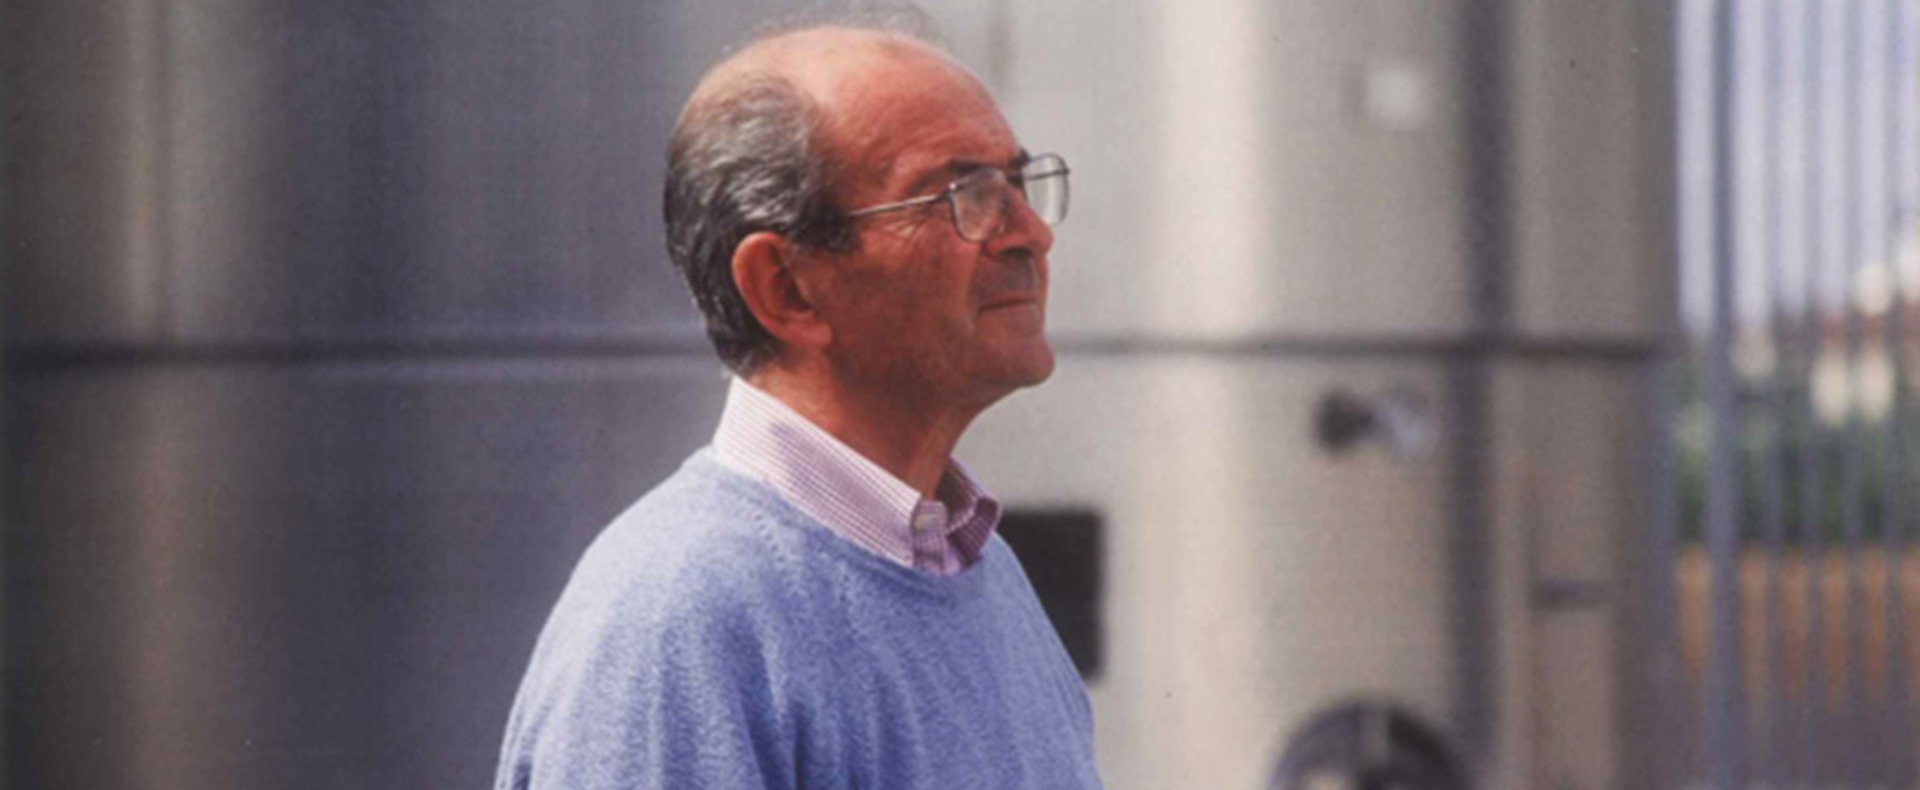 Augusto Cantele, Pugliese wine pioneer